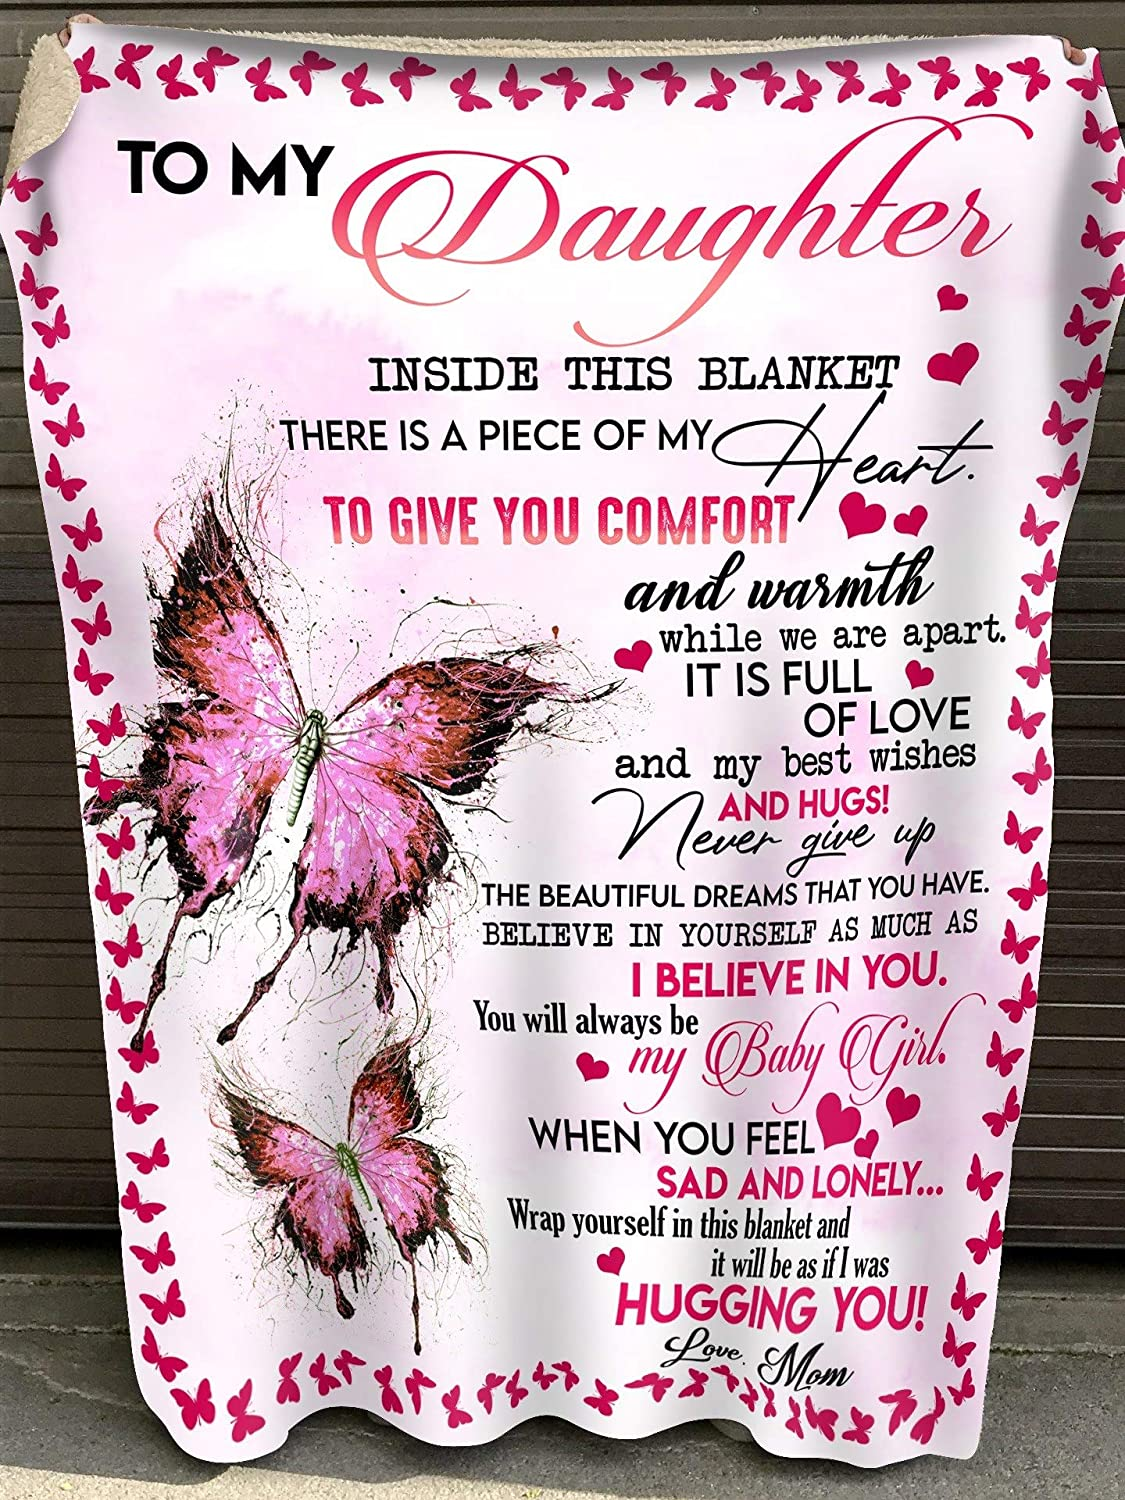 Personalized to My Daughter Gift New Orleans Mall D Excellent Mom for Blanket from